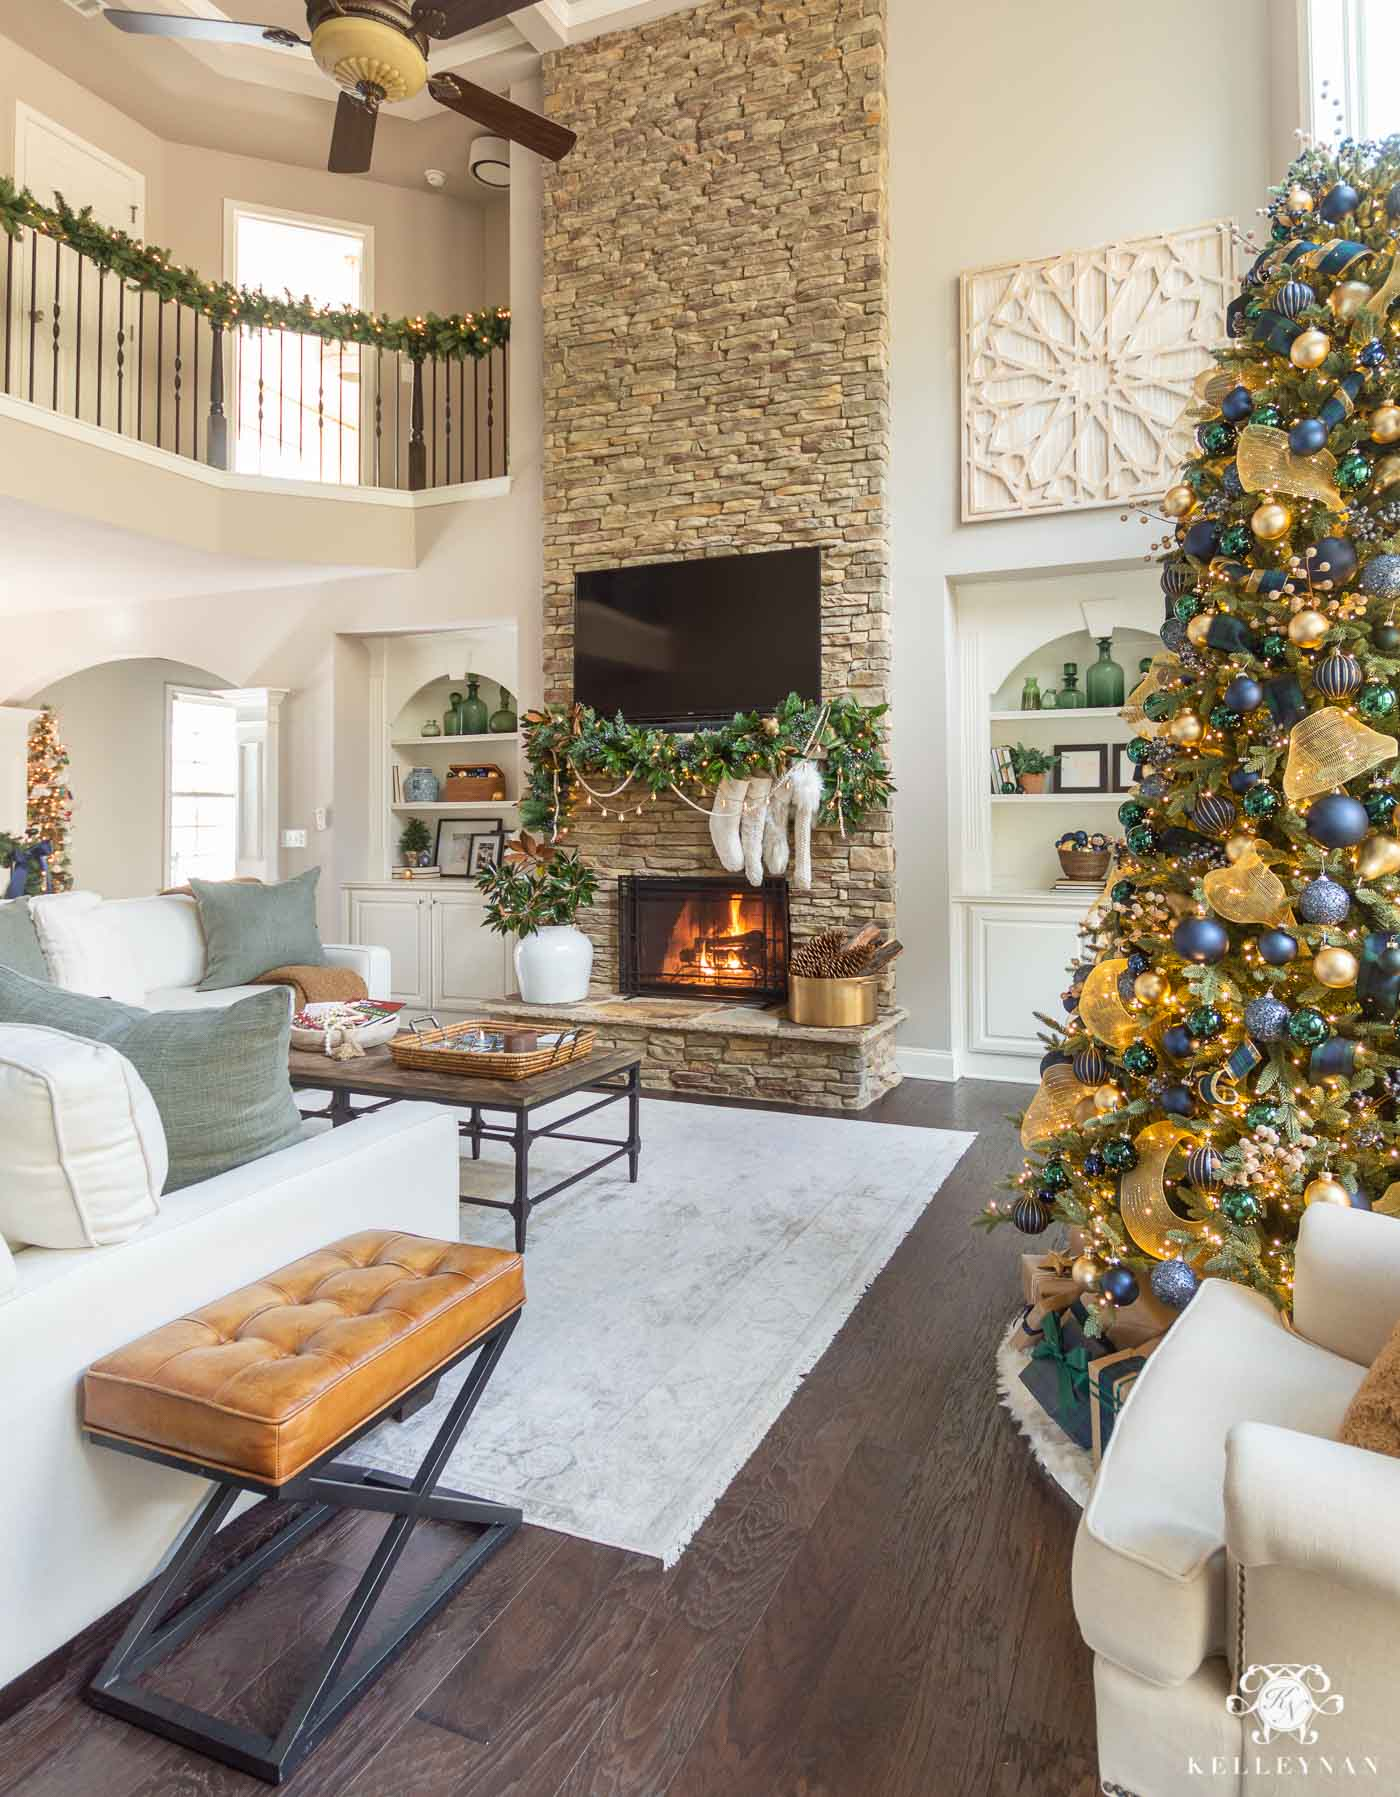 Christmas Home Decor Ideas in the Living Room